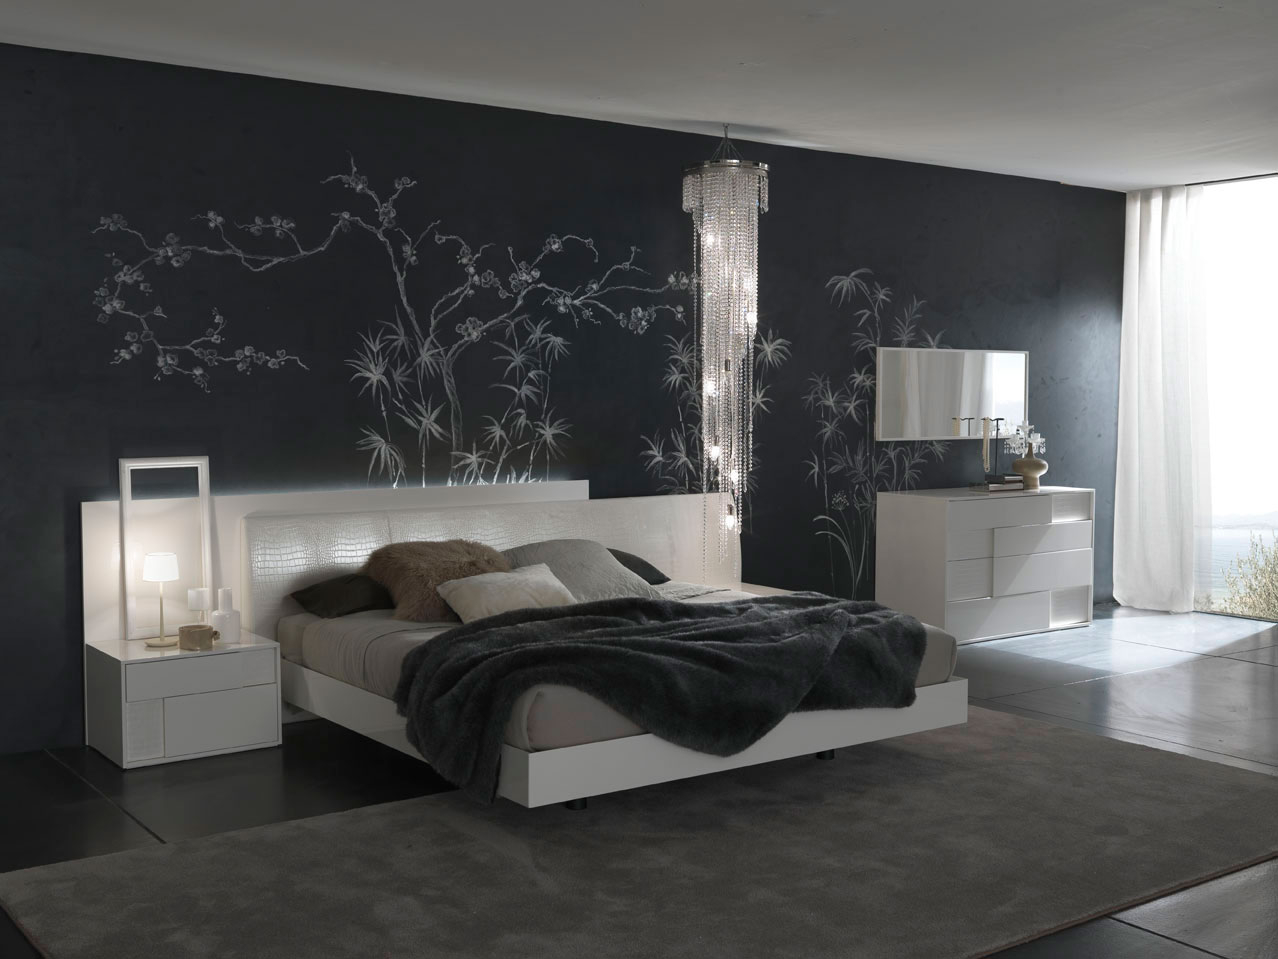 Download Artistic Flower Theme Wallpaper Modern Bedroom Decoseecom within 11 Genius Tricks of How to Make Modern Bedroom Wallpaper Ideas